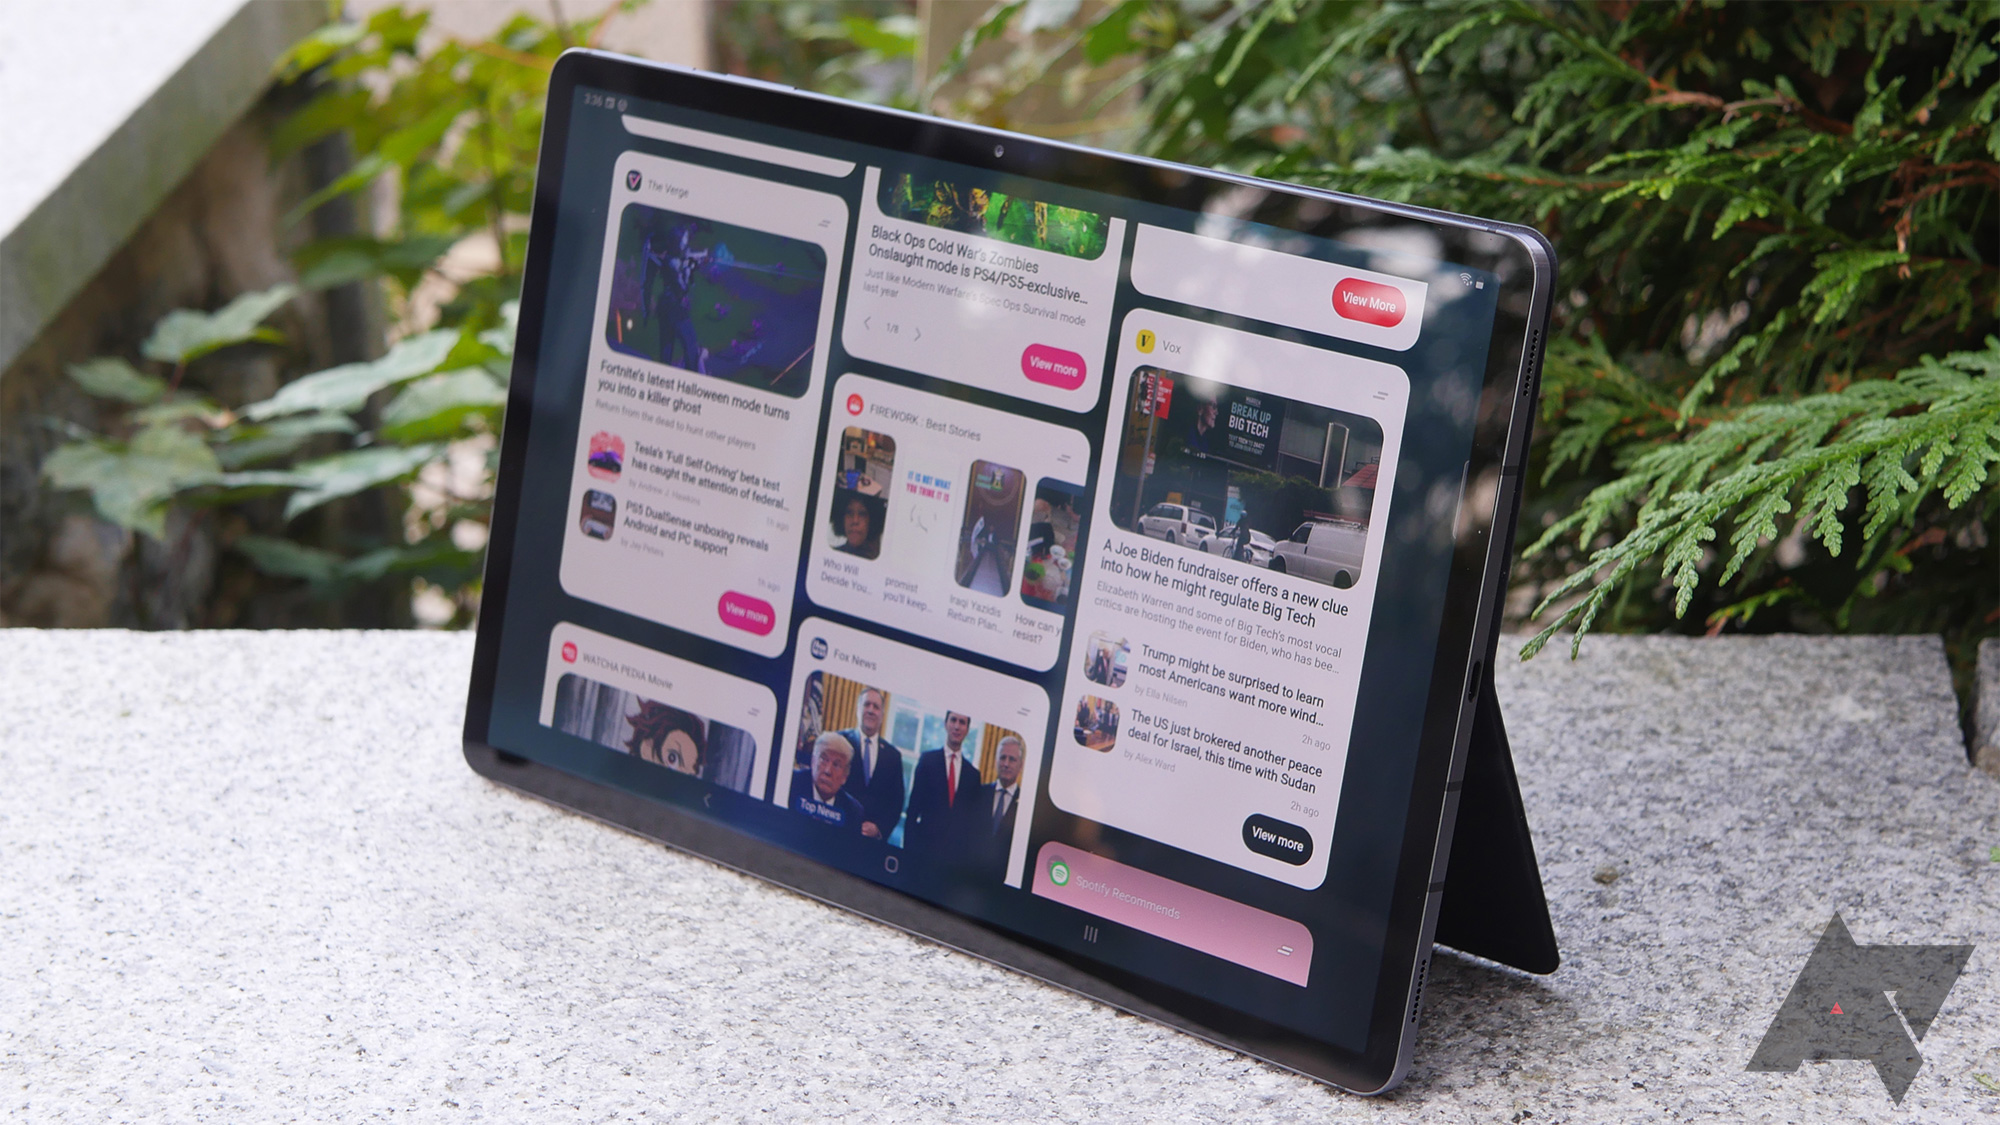 Samsung's excellent Android tablets just got a lot more affordable, with deals offering up to $300 off - Android Police